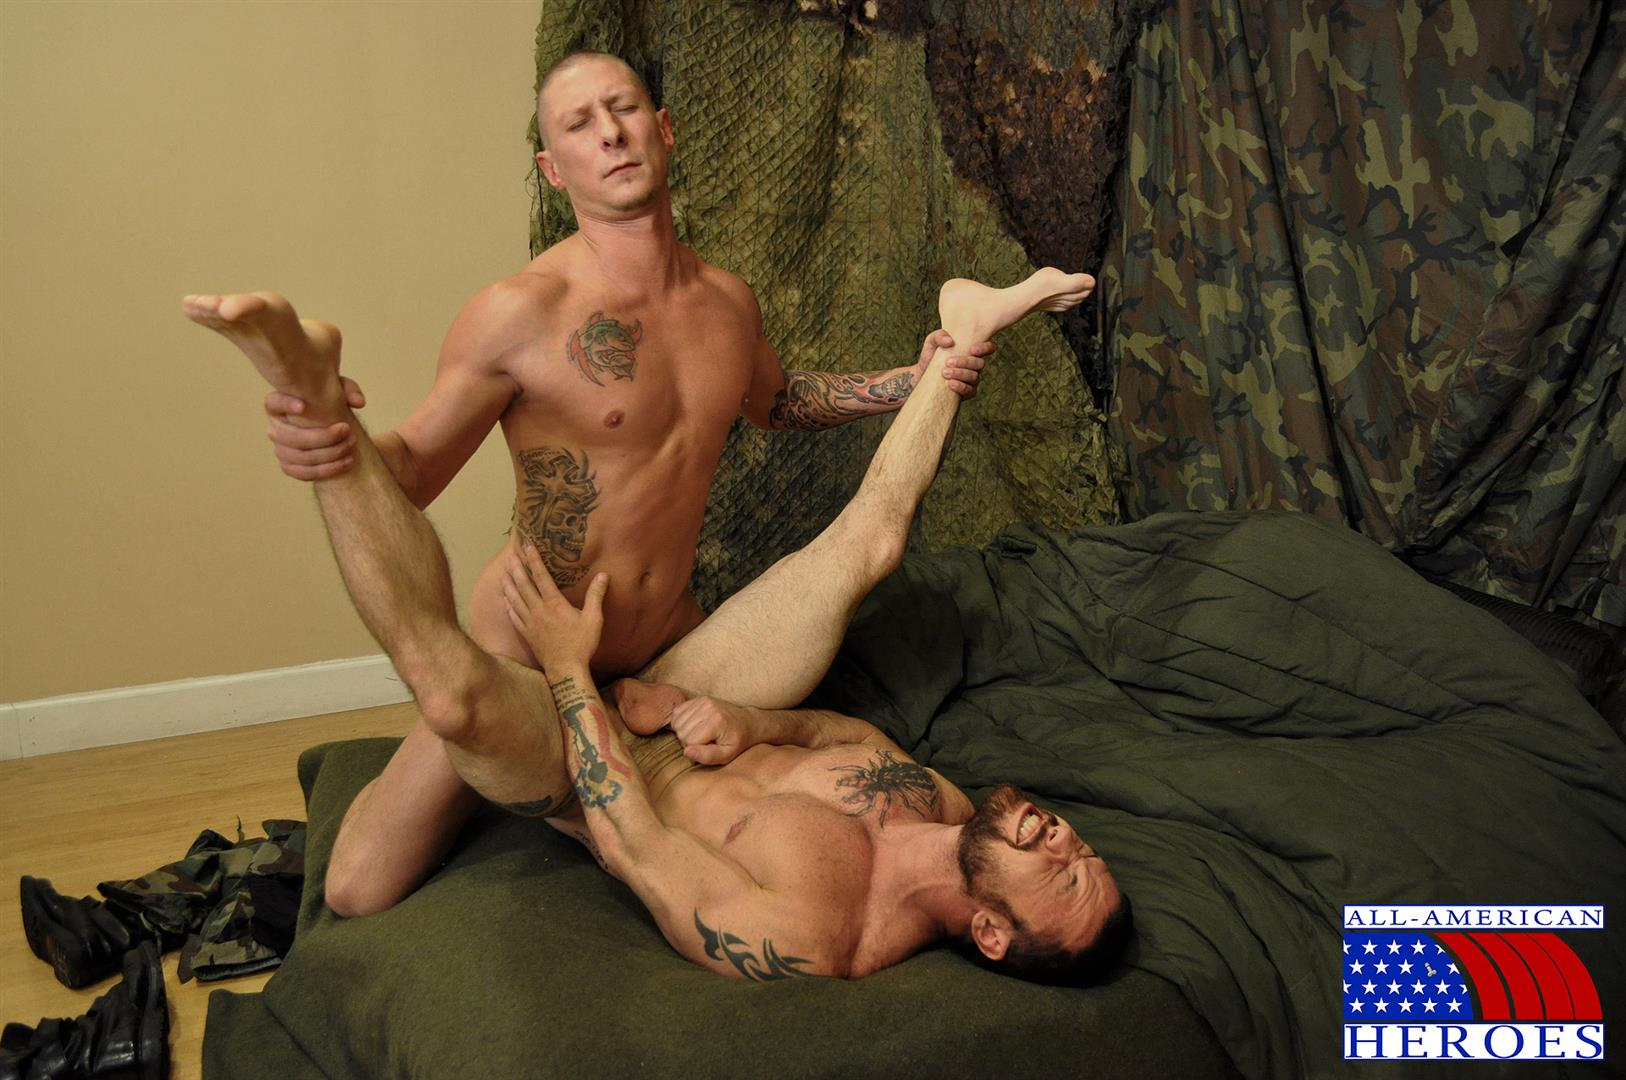 gay military porno These hot military service men have their own dirty way of coping with loneliness.